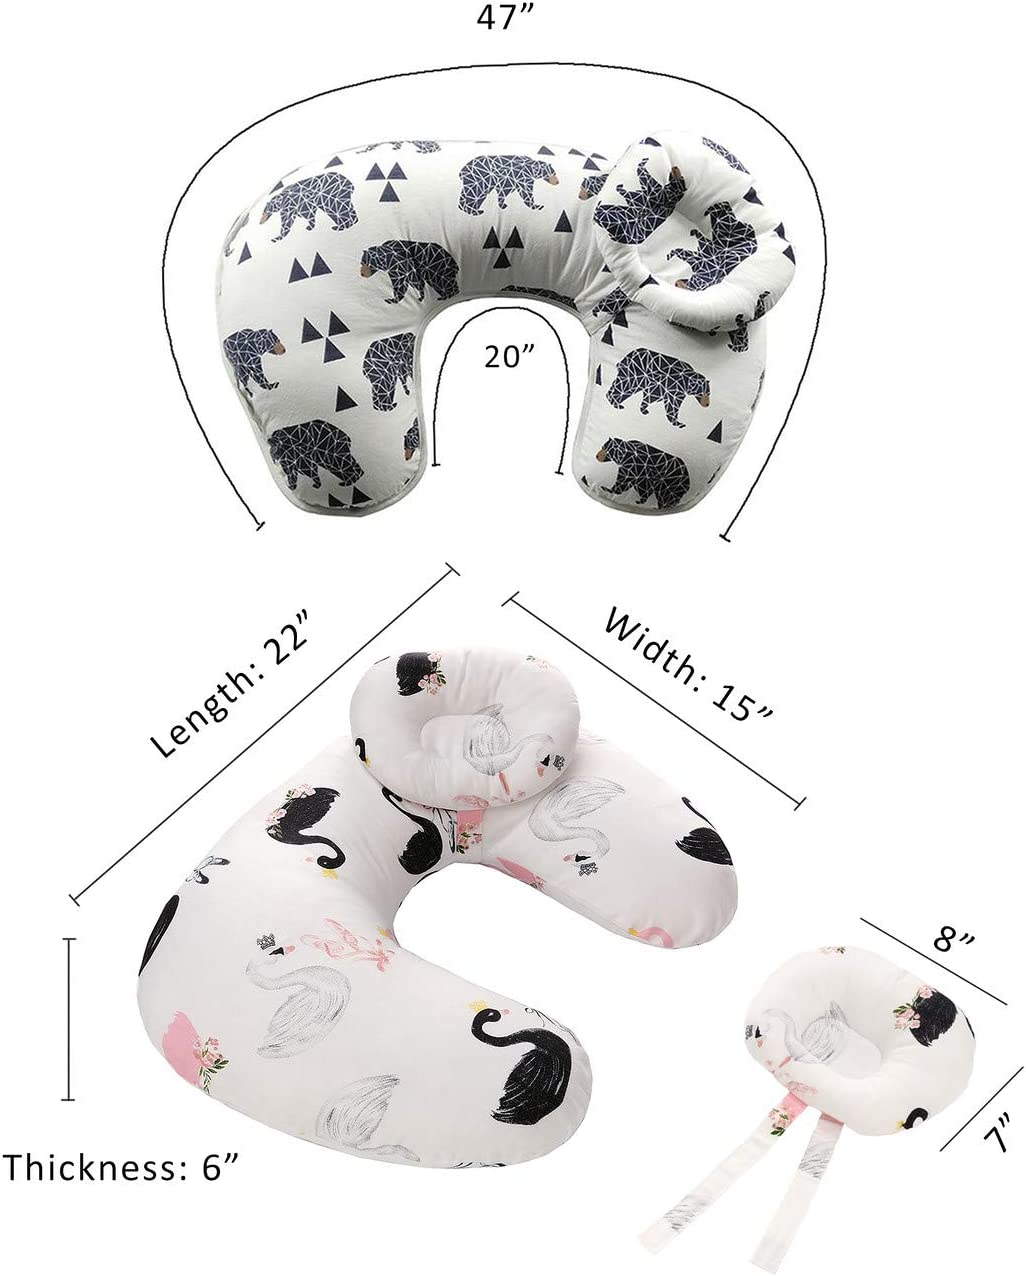 Breastfeeding Pillow Adjustable Nursing Pillow with a Detachable Headrest for Baby 45/°Angle Support for Babys Head